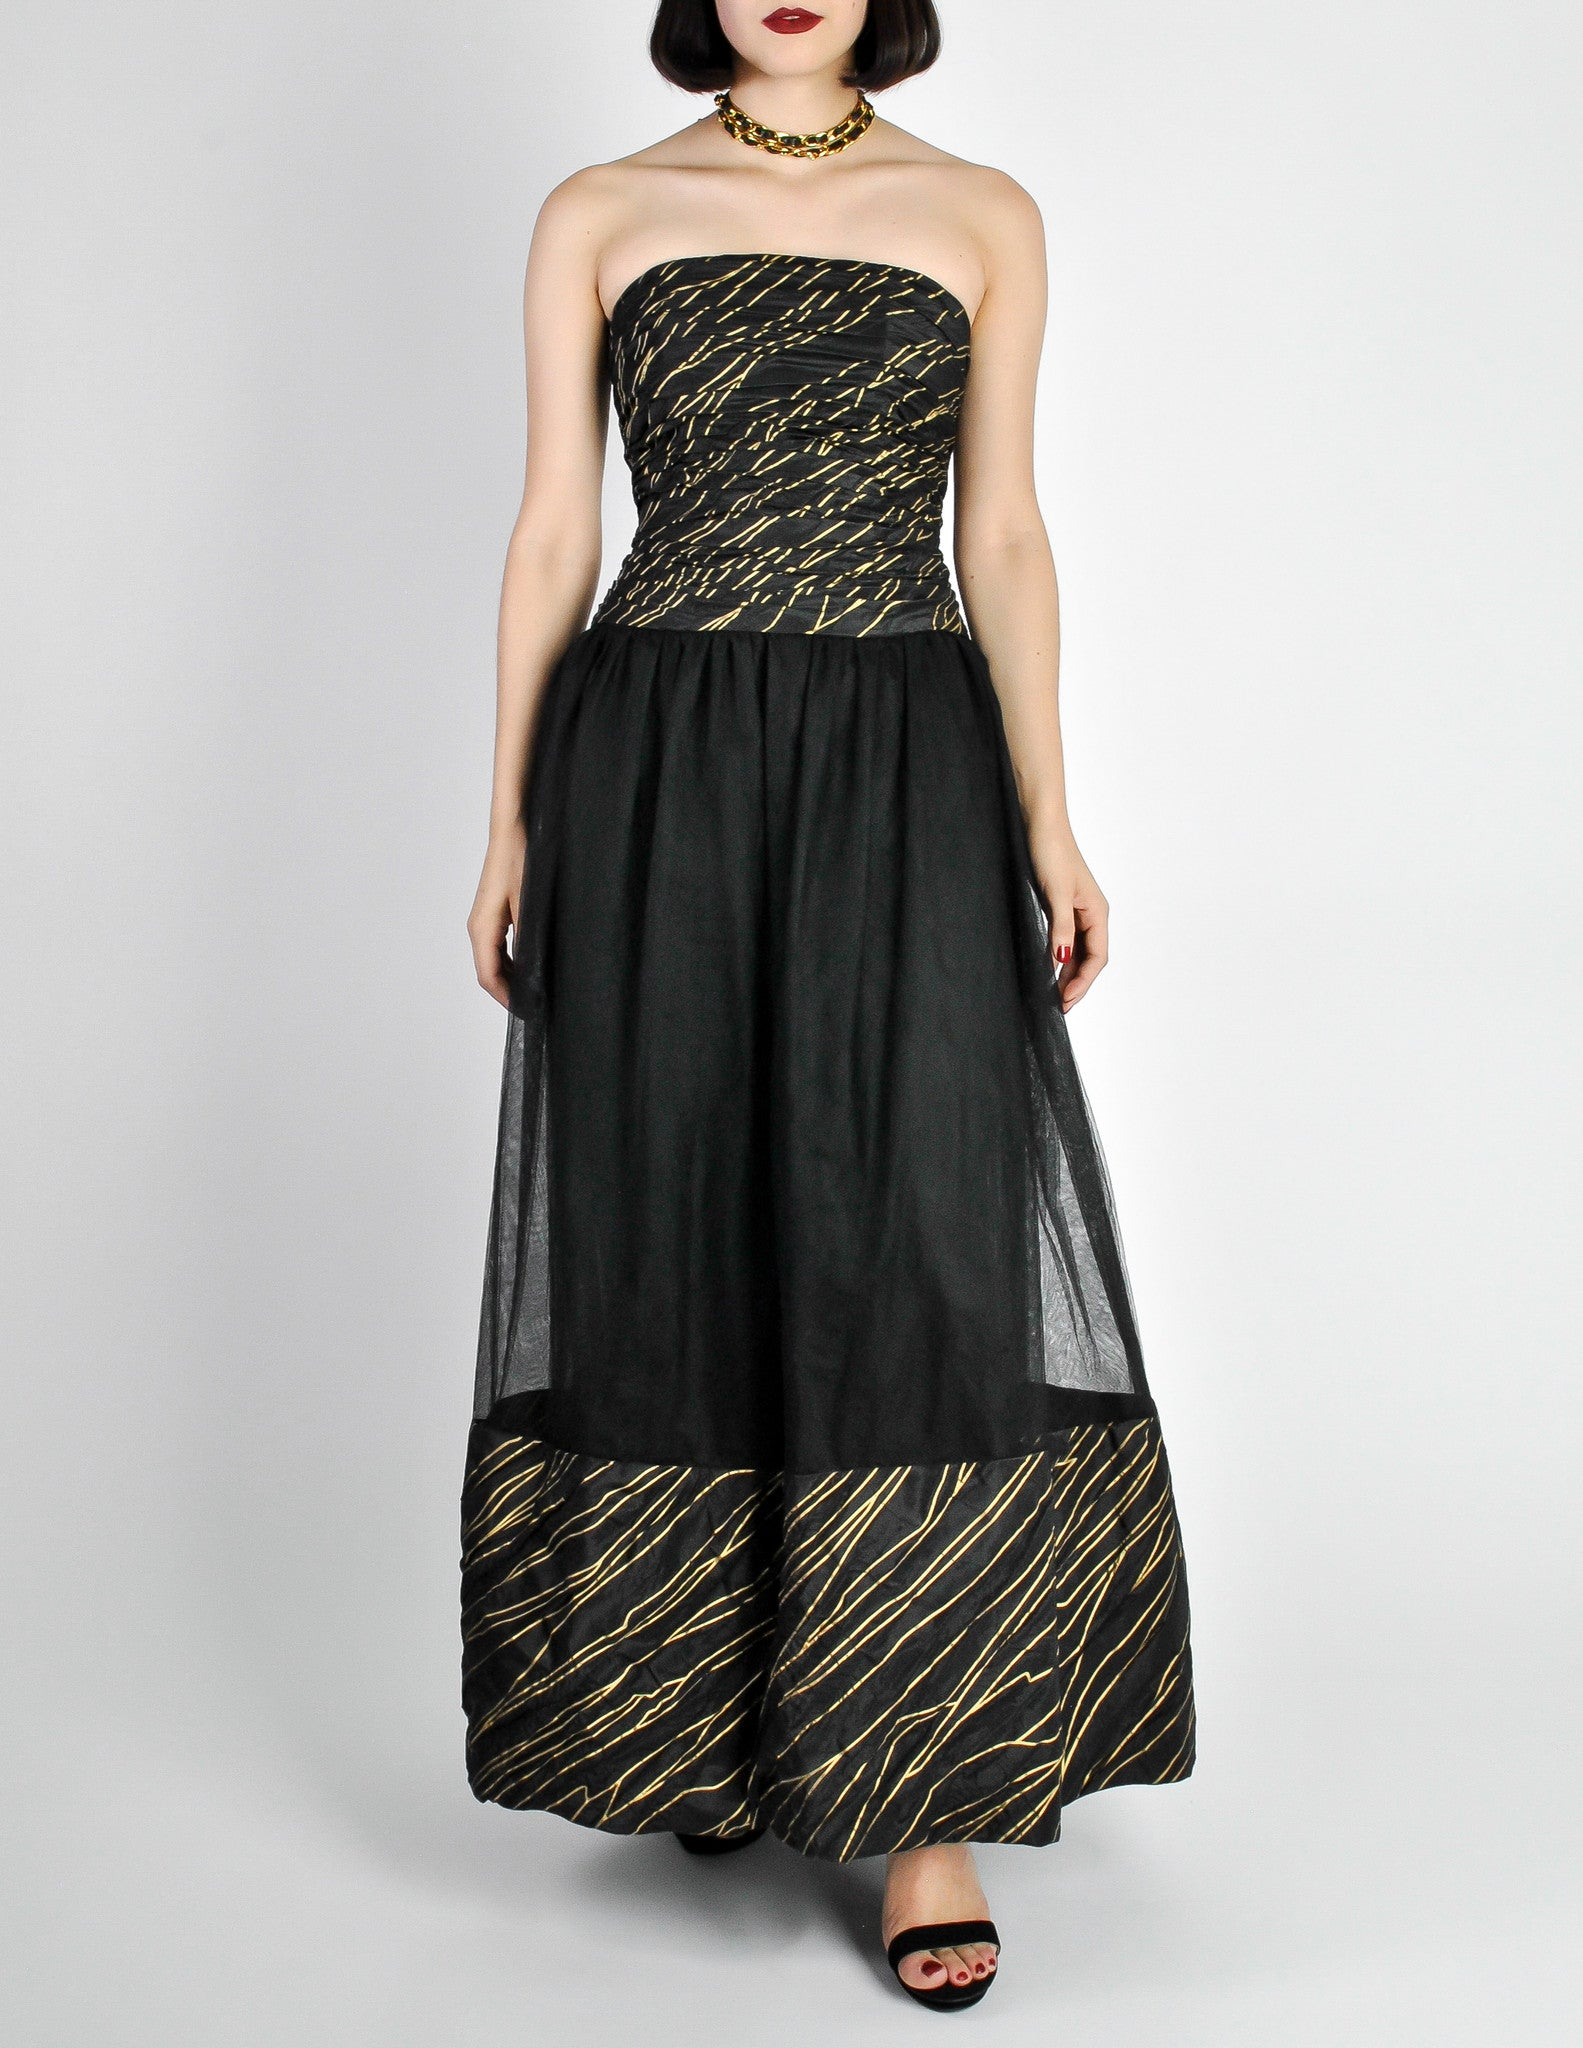 Chanel Vintage Black & Gold Silk & Tulle Evening Gown - from ...